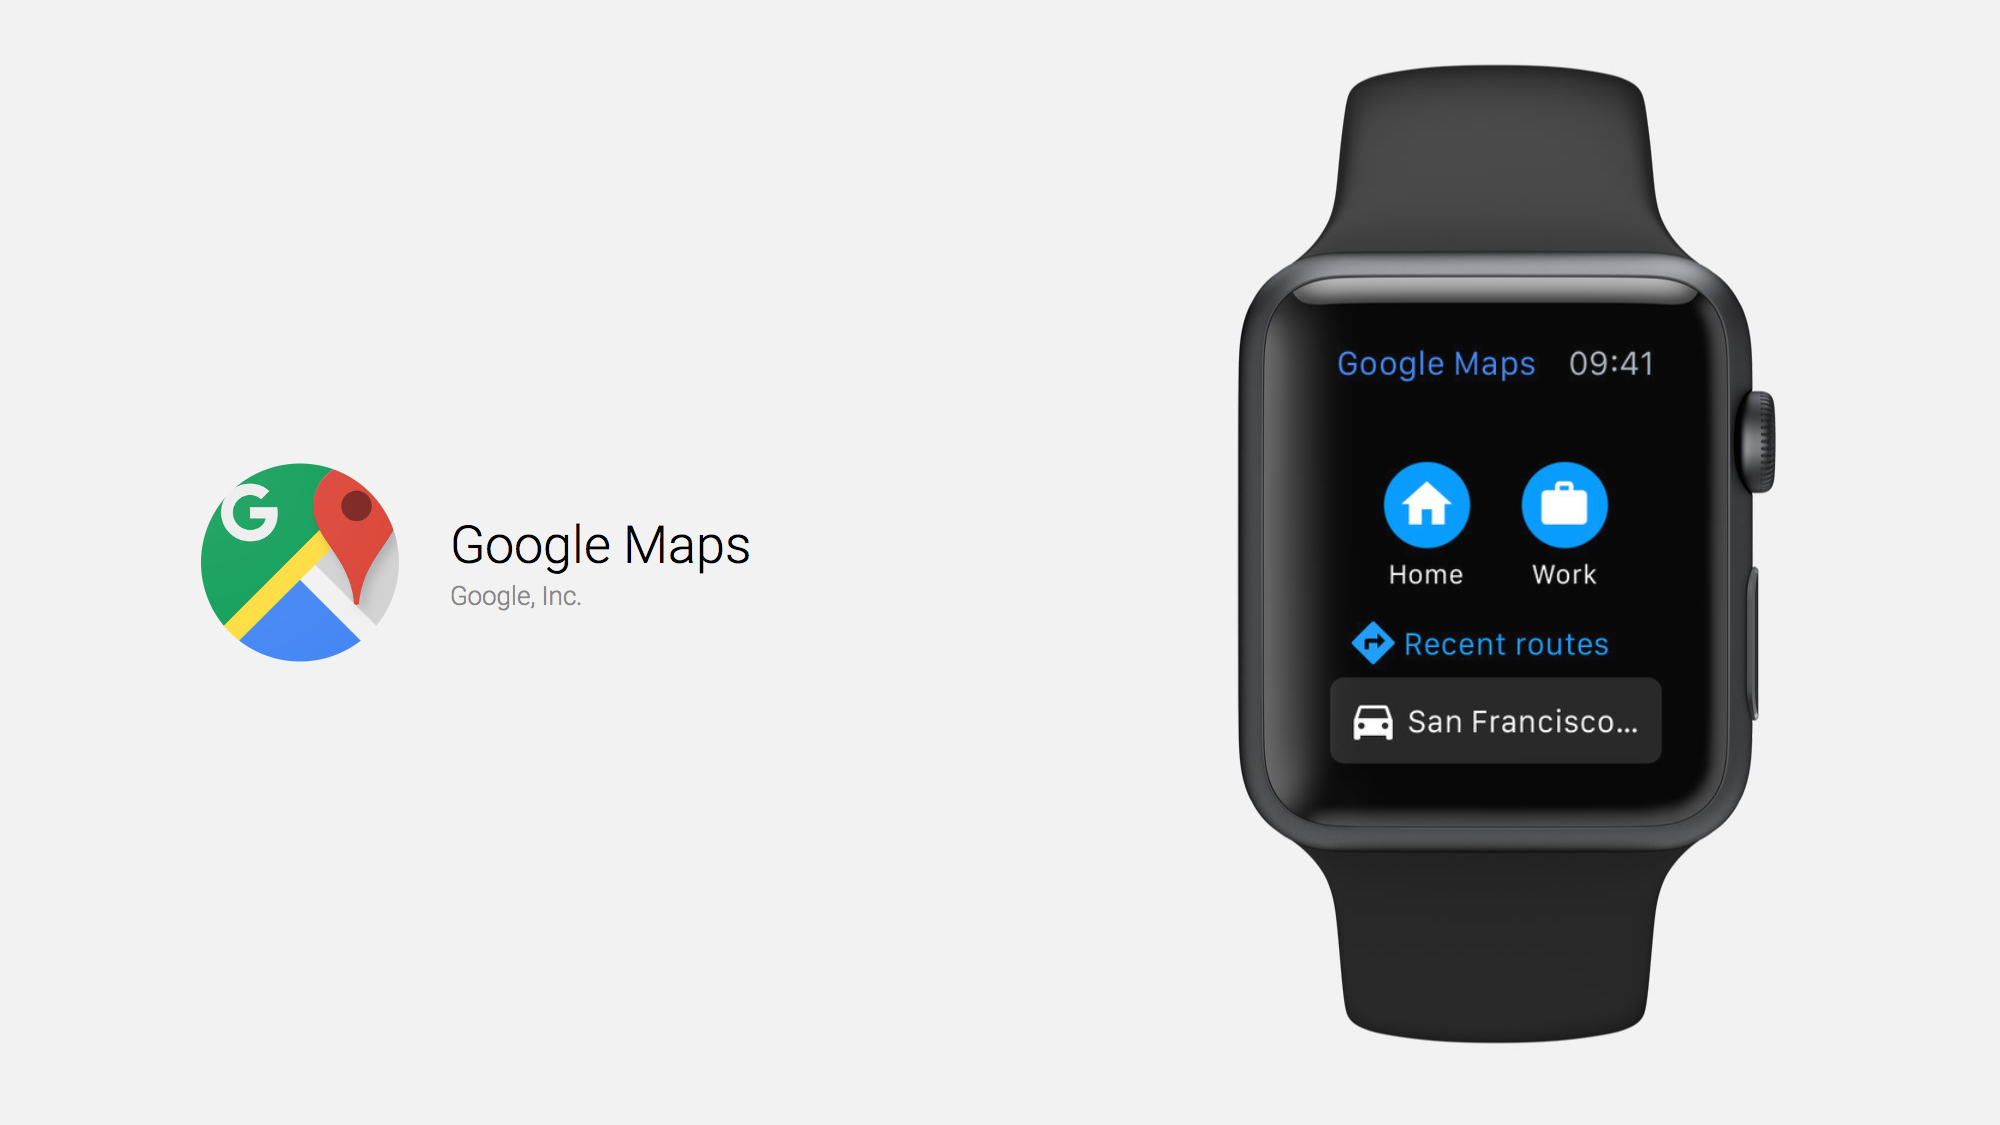 Google Maps lands on the Apple Watch